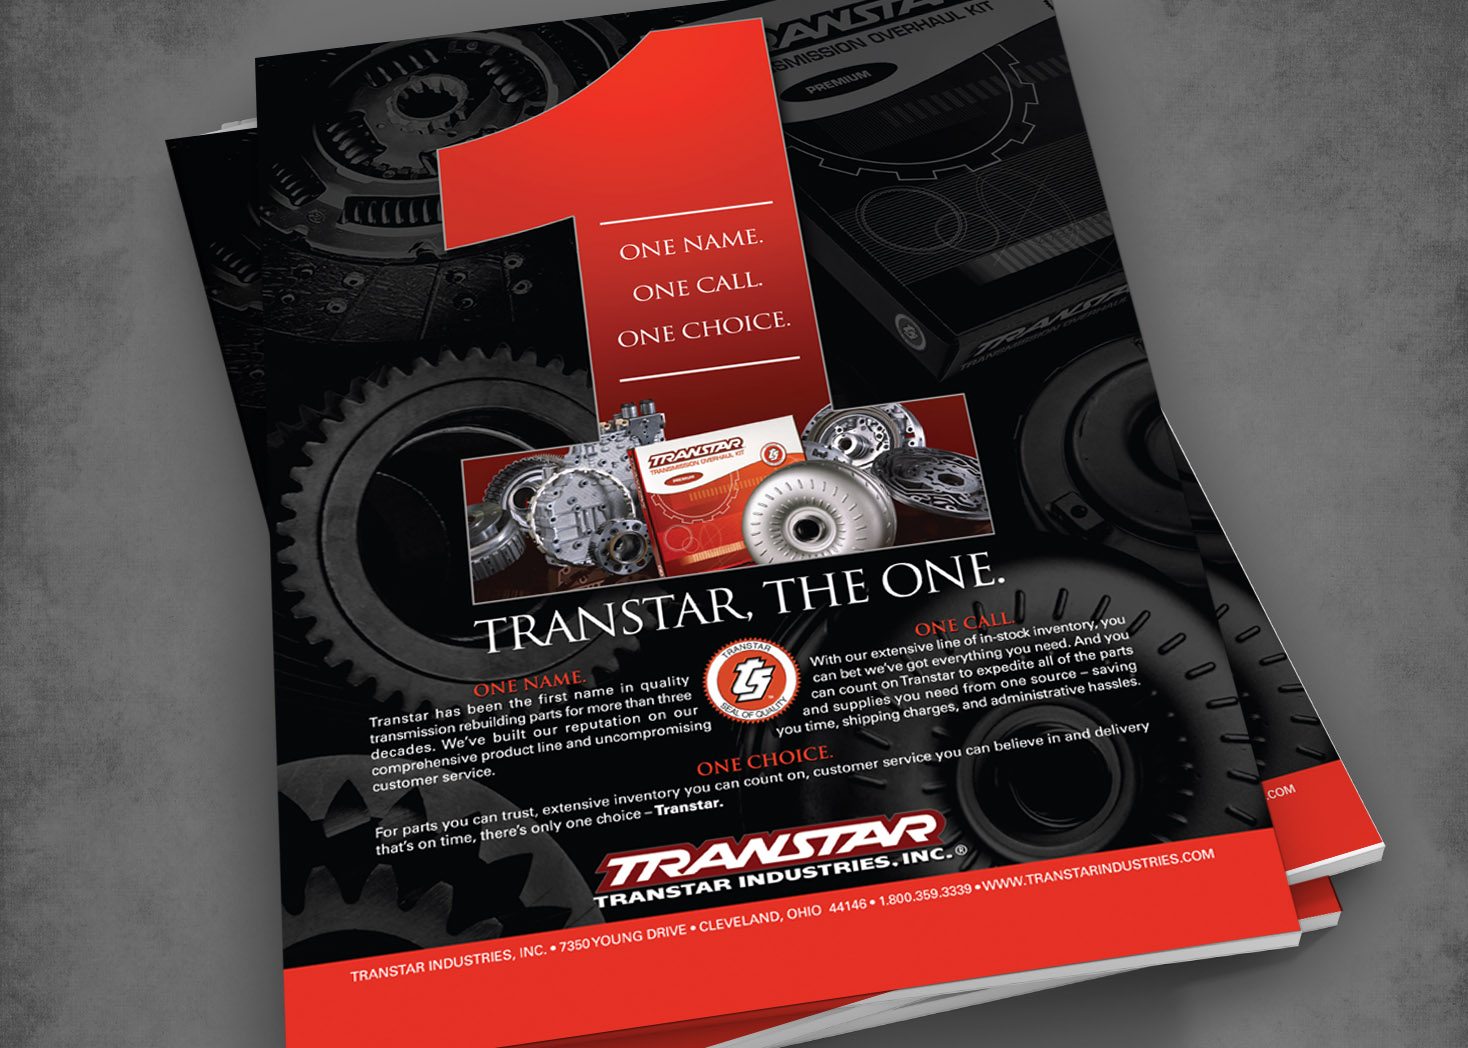 Transtar - The One - Magazine Ad Design - Les Lehman Design